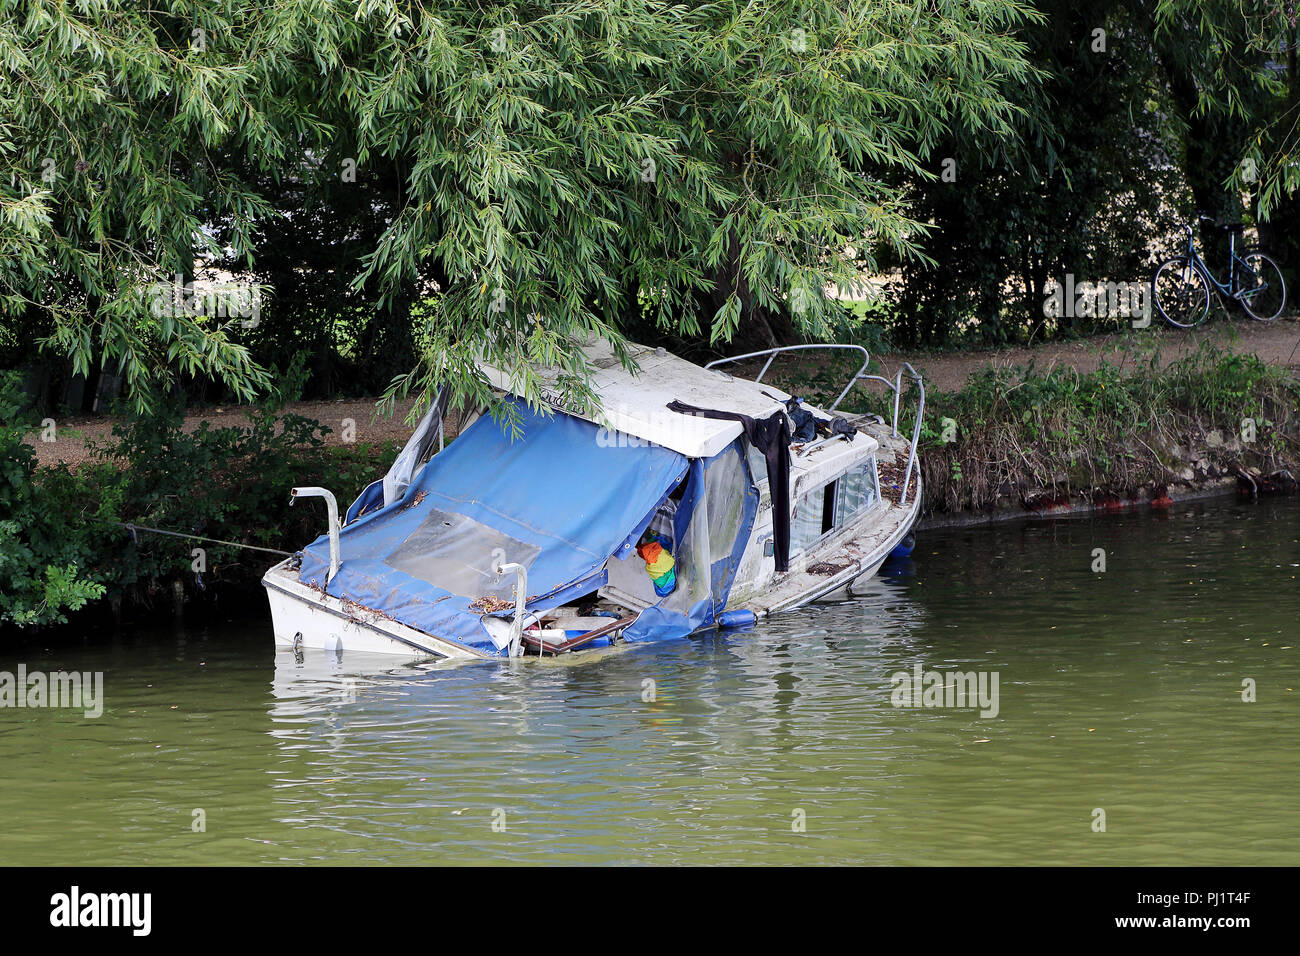 A small cabin cruiser boat appears to be sinking on the